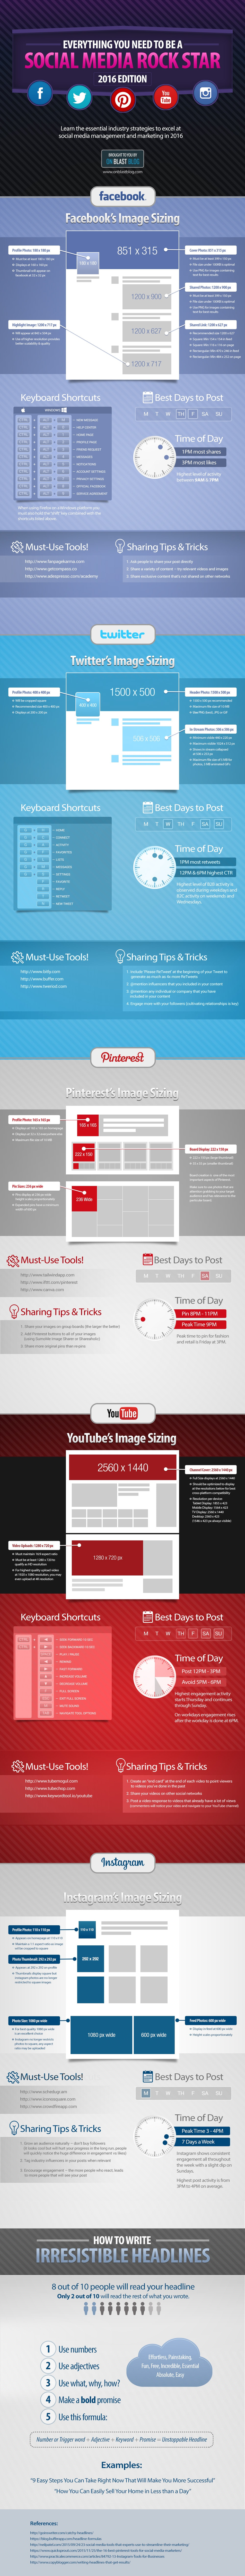 Social Media Marketing For a Solo Business (Infographic)